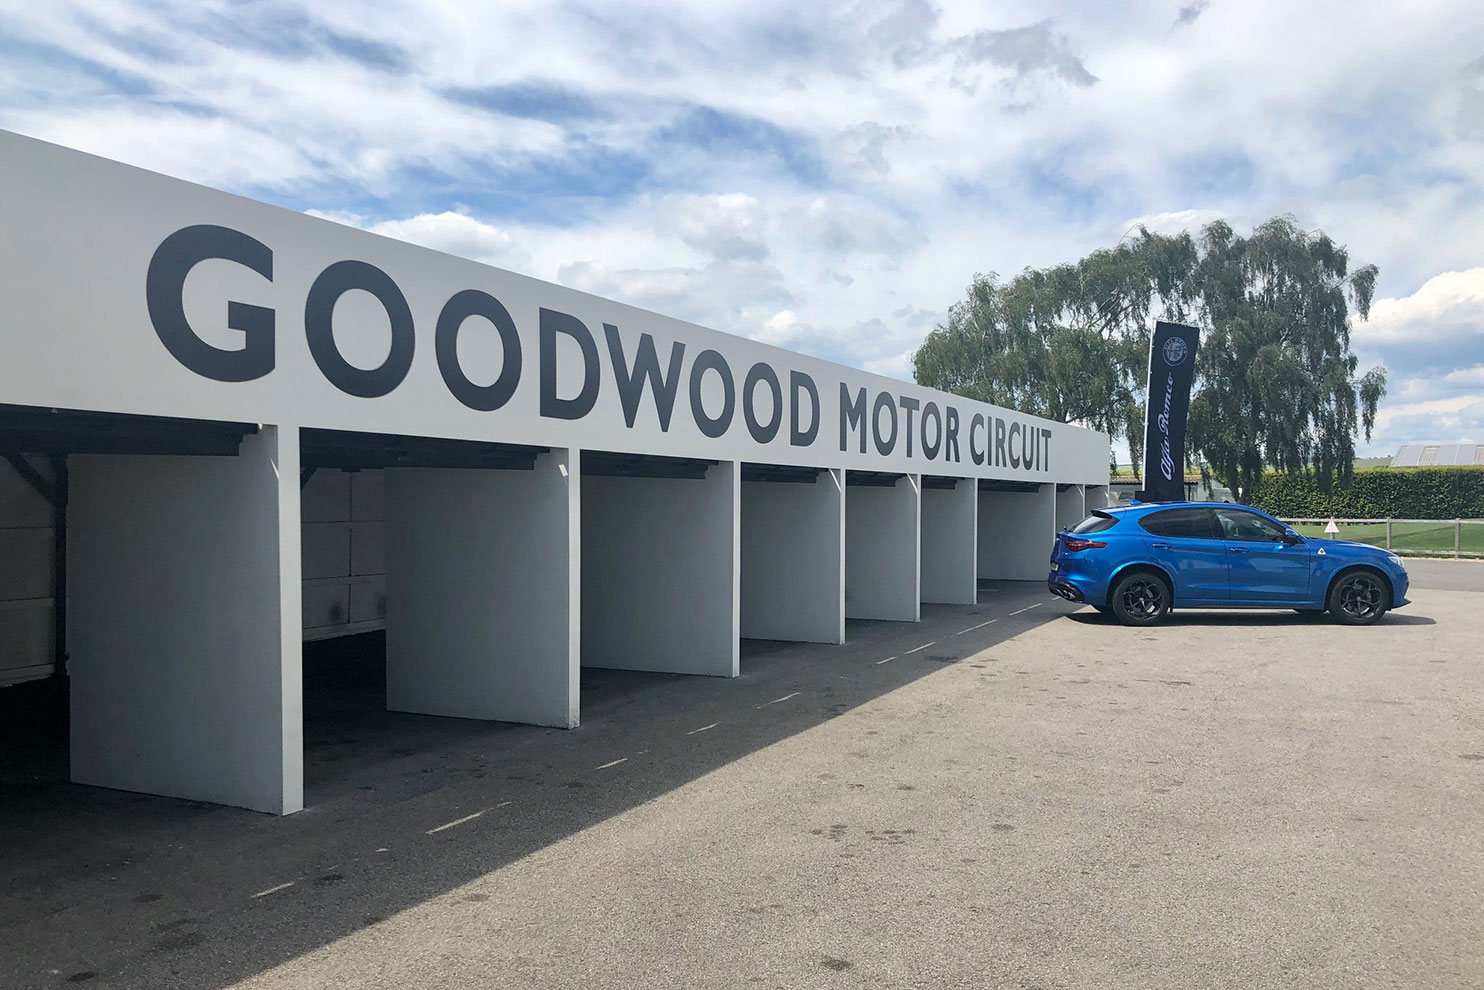 LGE_Goodwood_3